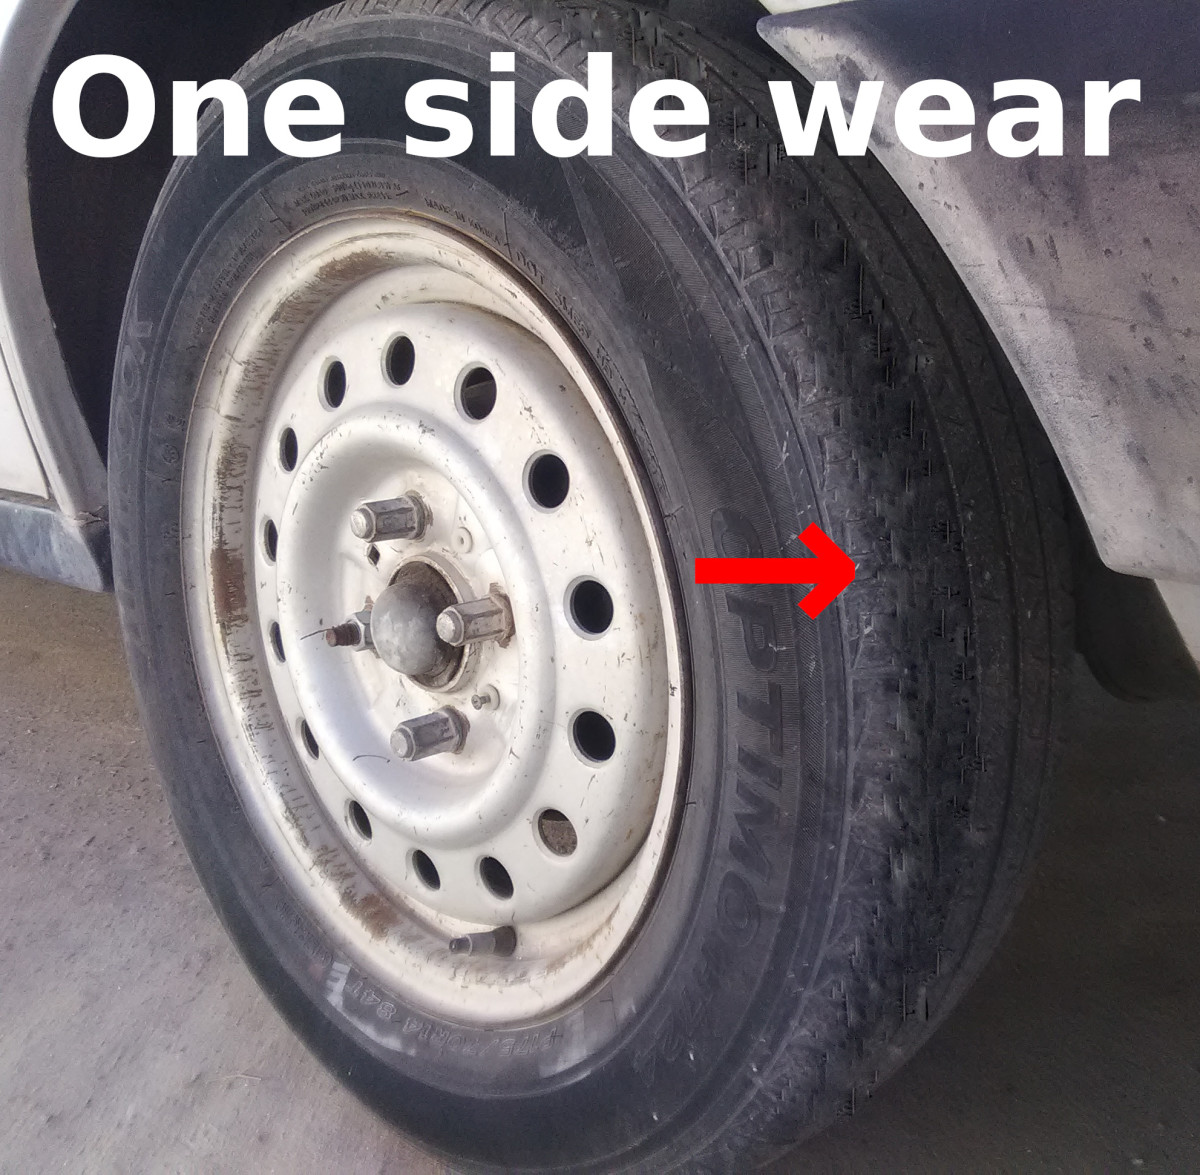 Excessive camber can cause one side of a tire to wear more.